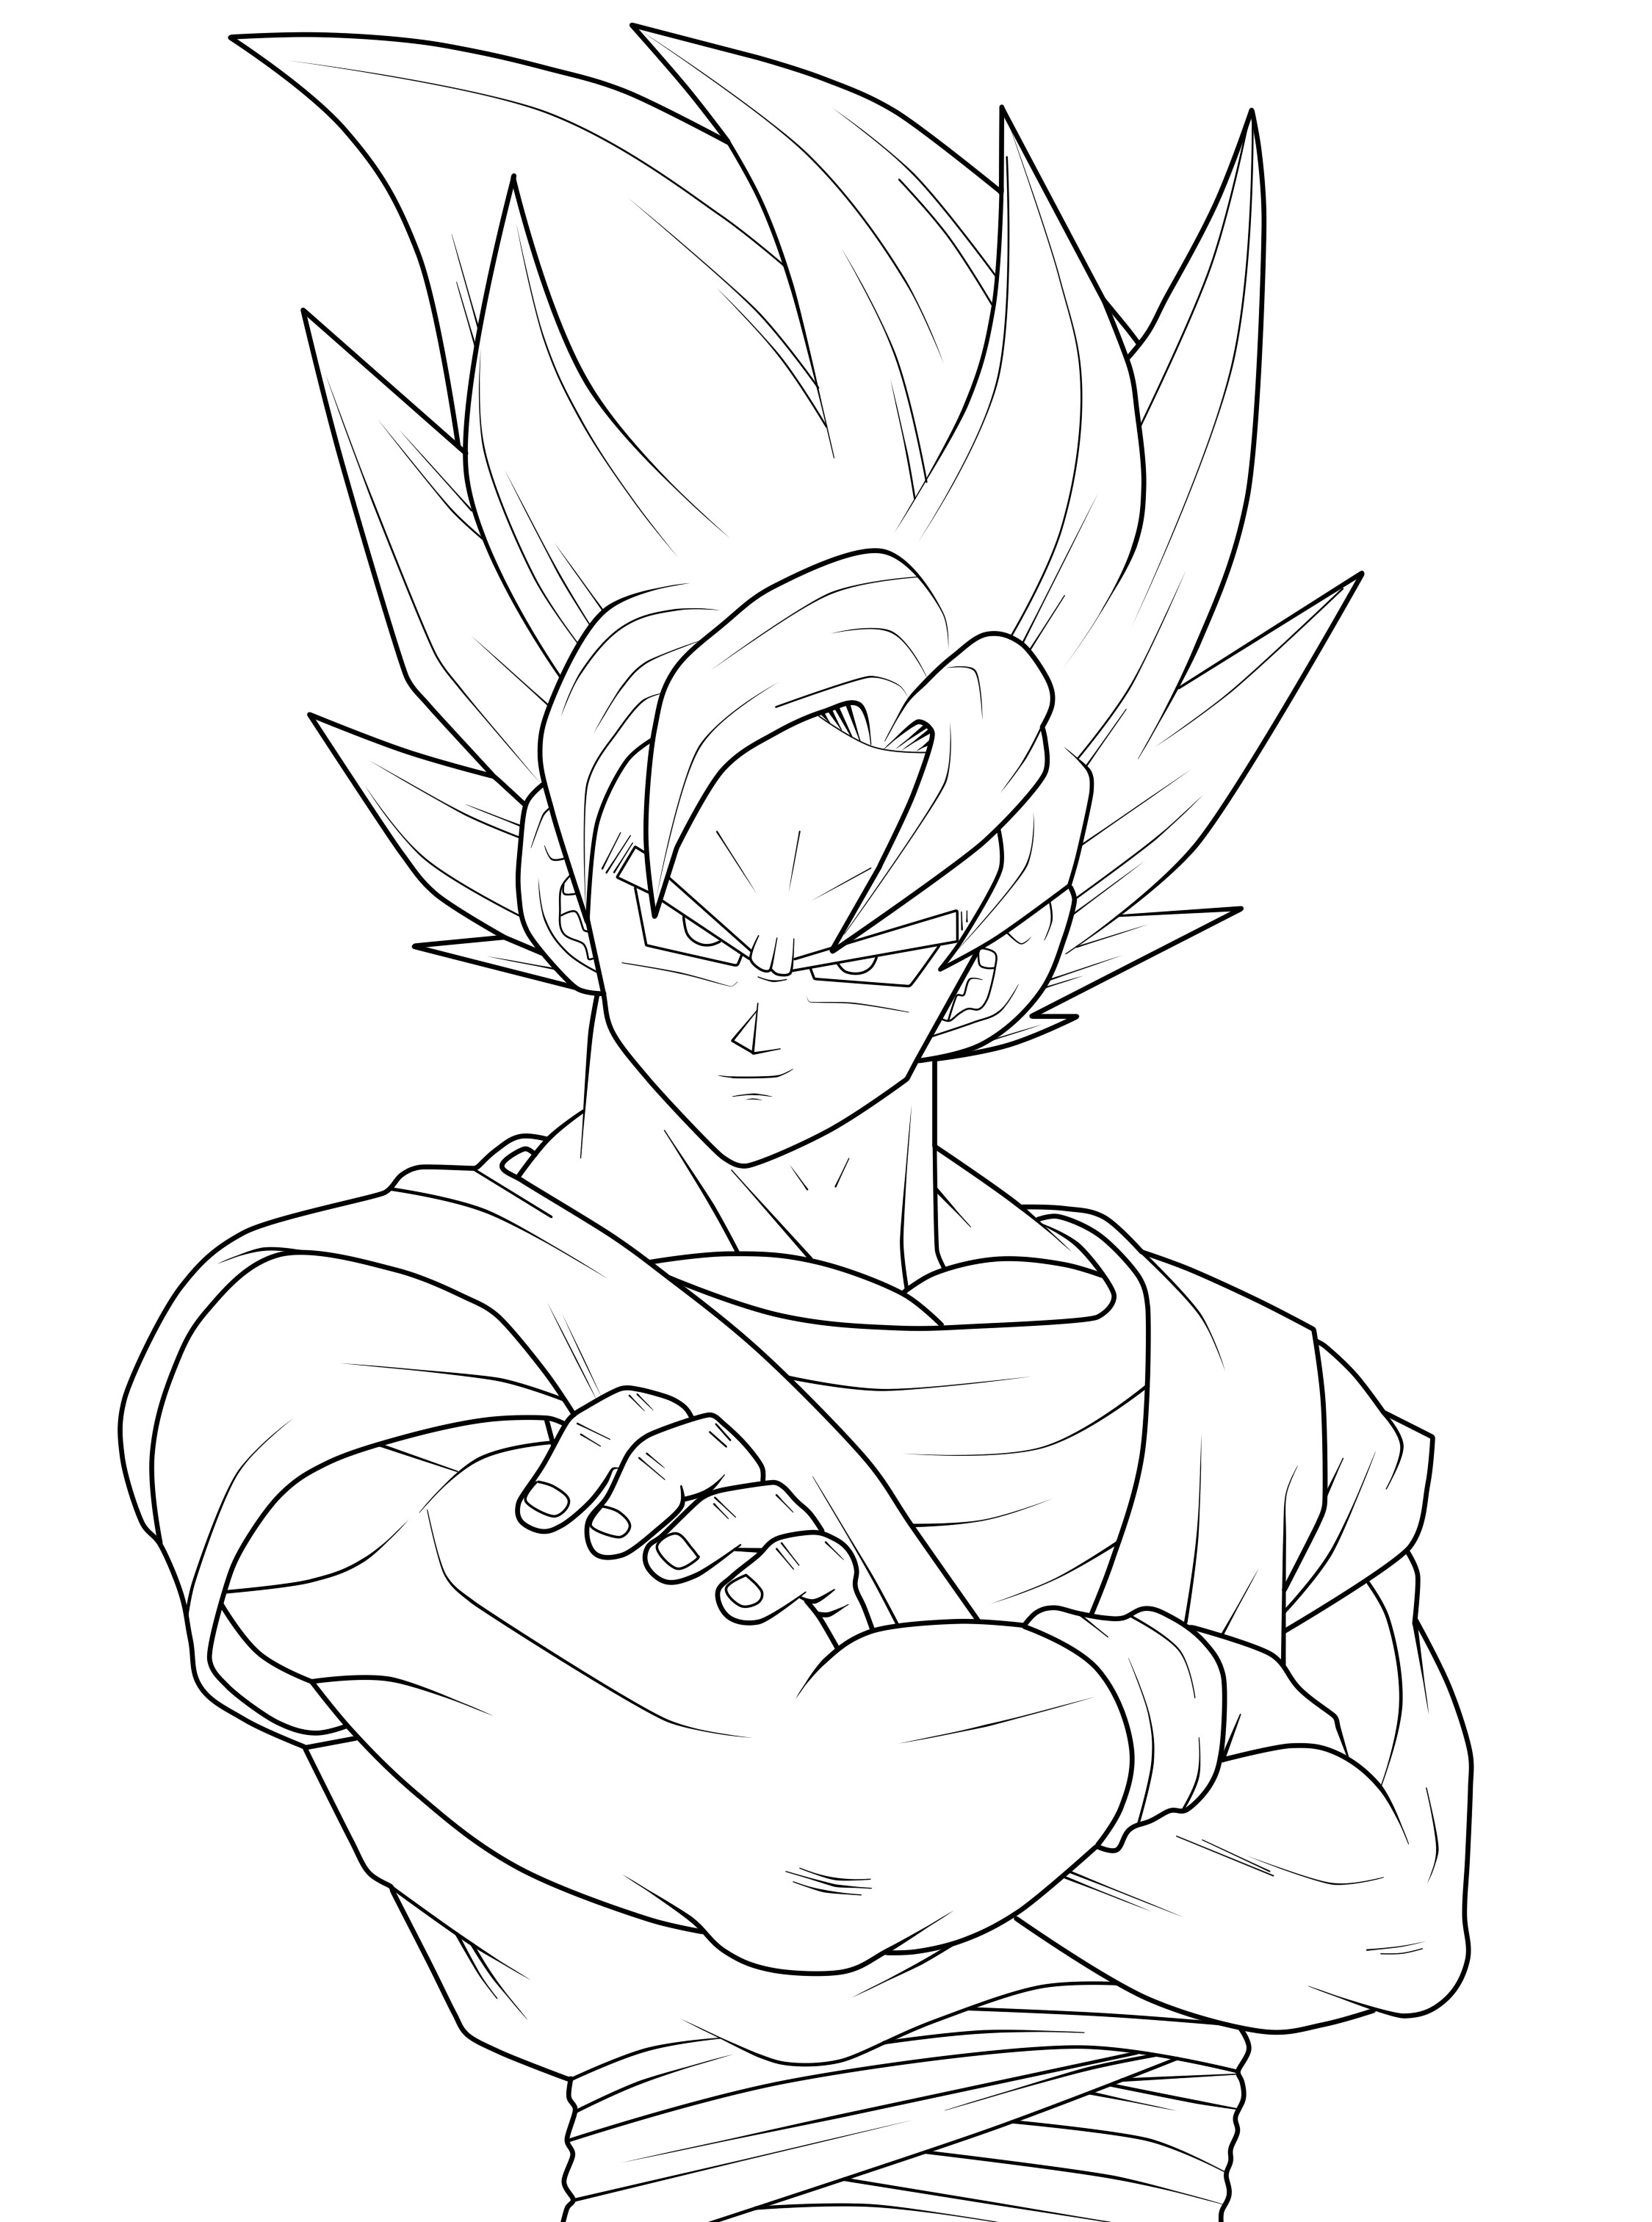 2249x3025 Goku Vs Vegeta Coloring Pages Games New Print Goku